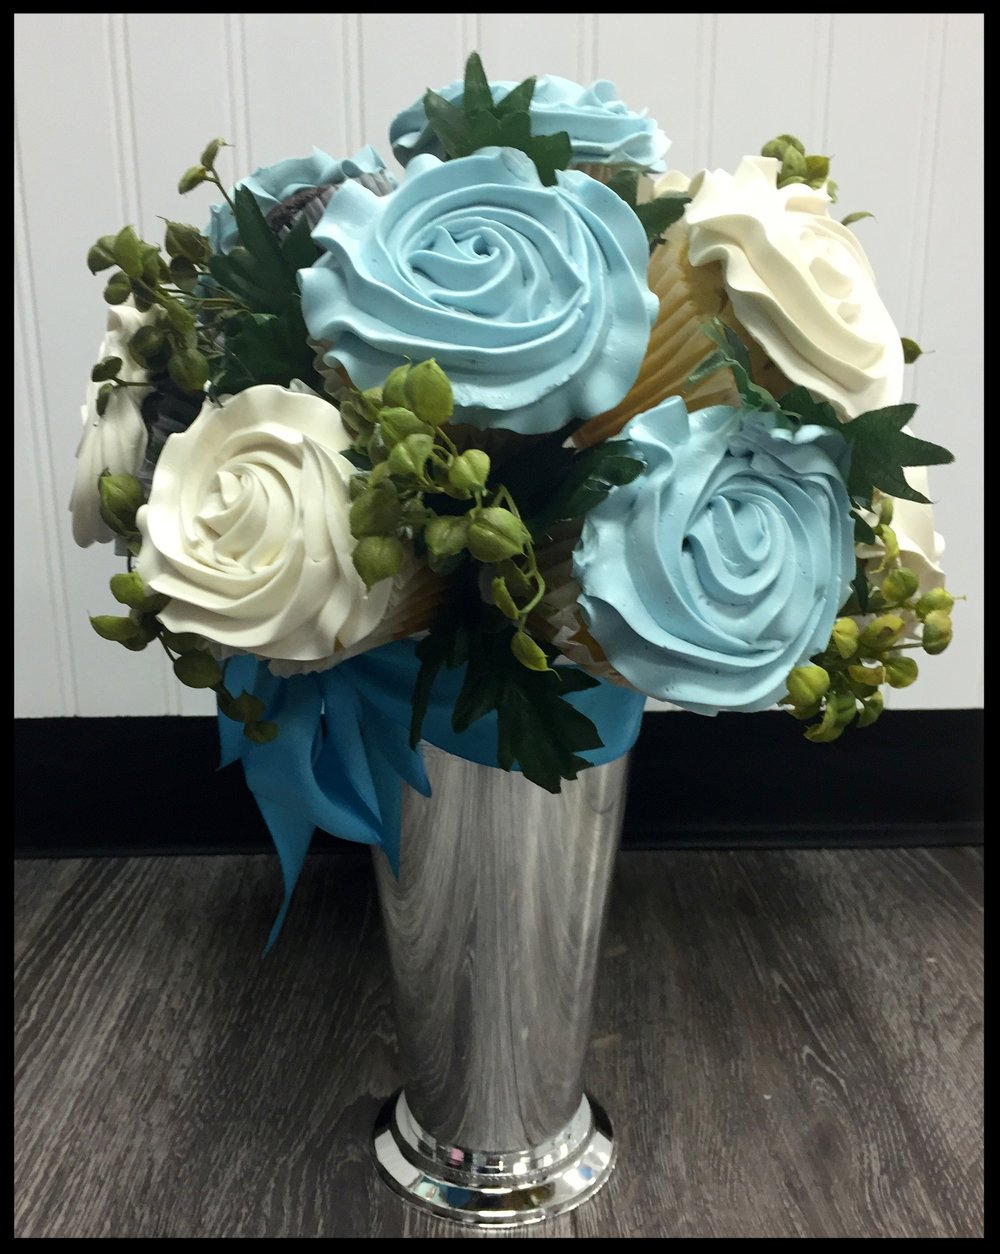 MINT JULEP SILVER VASE - 12 CUPCAKES